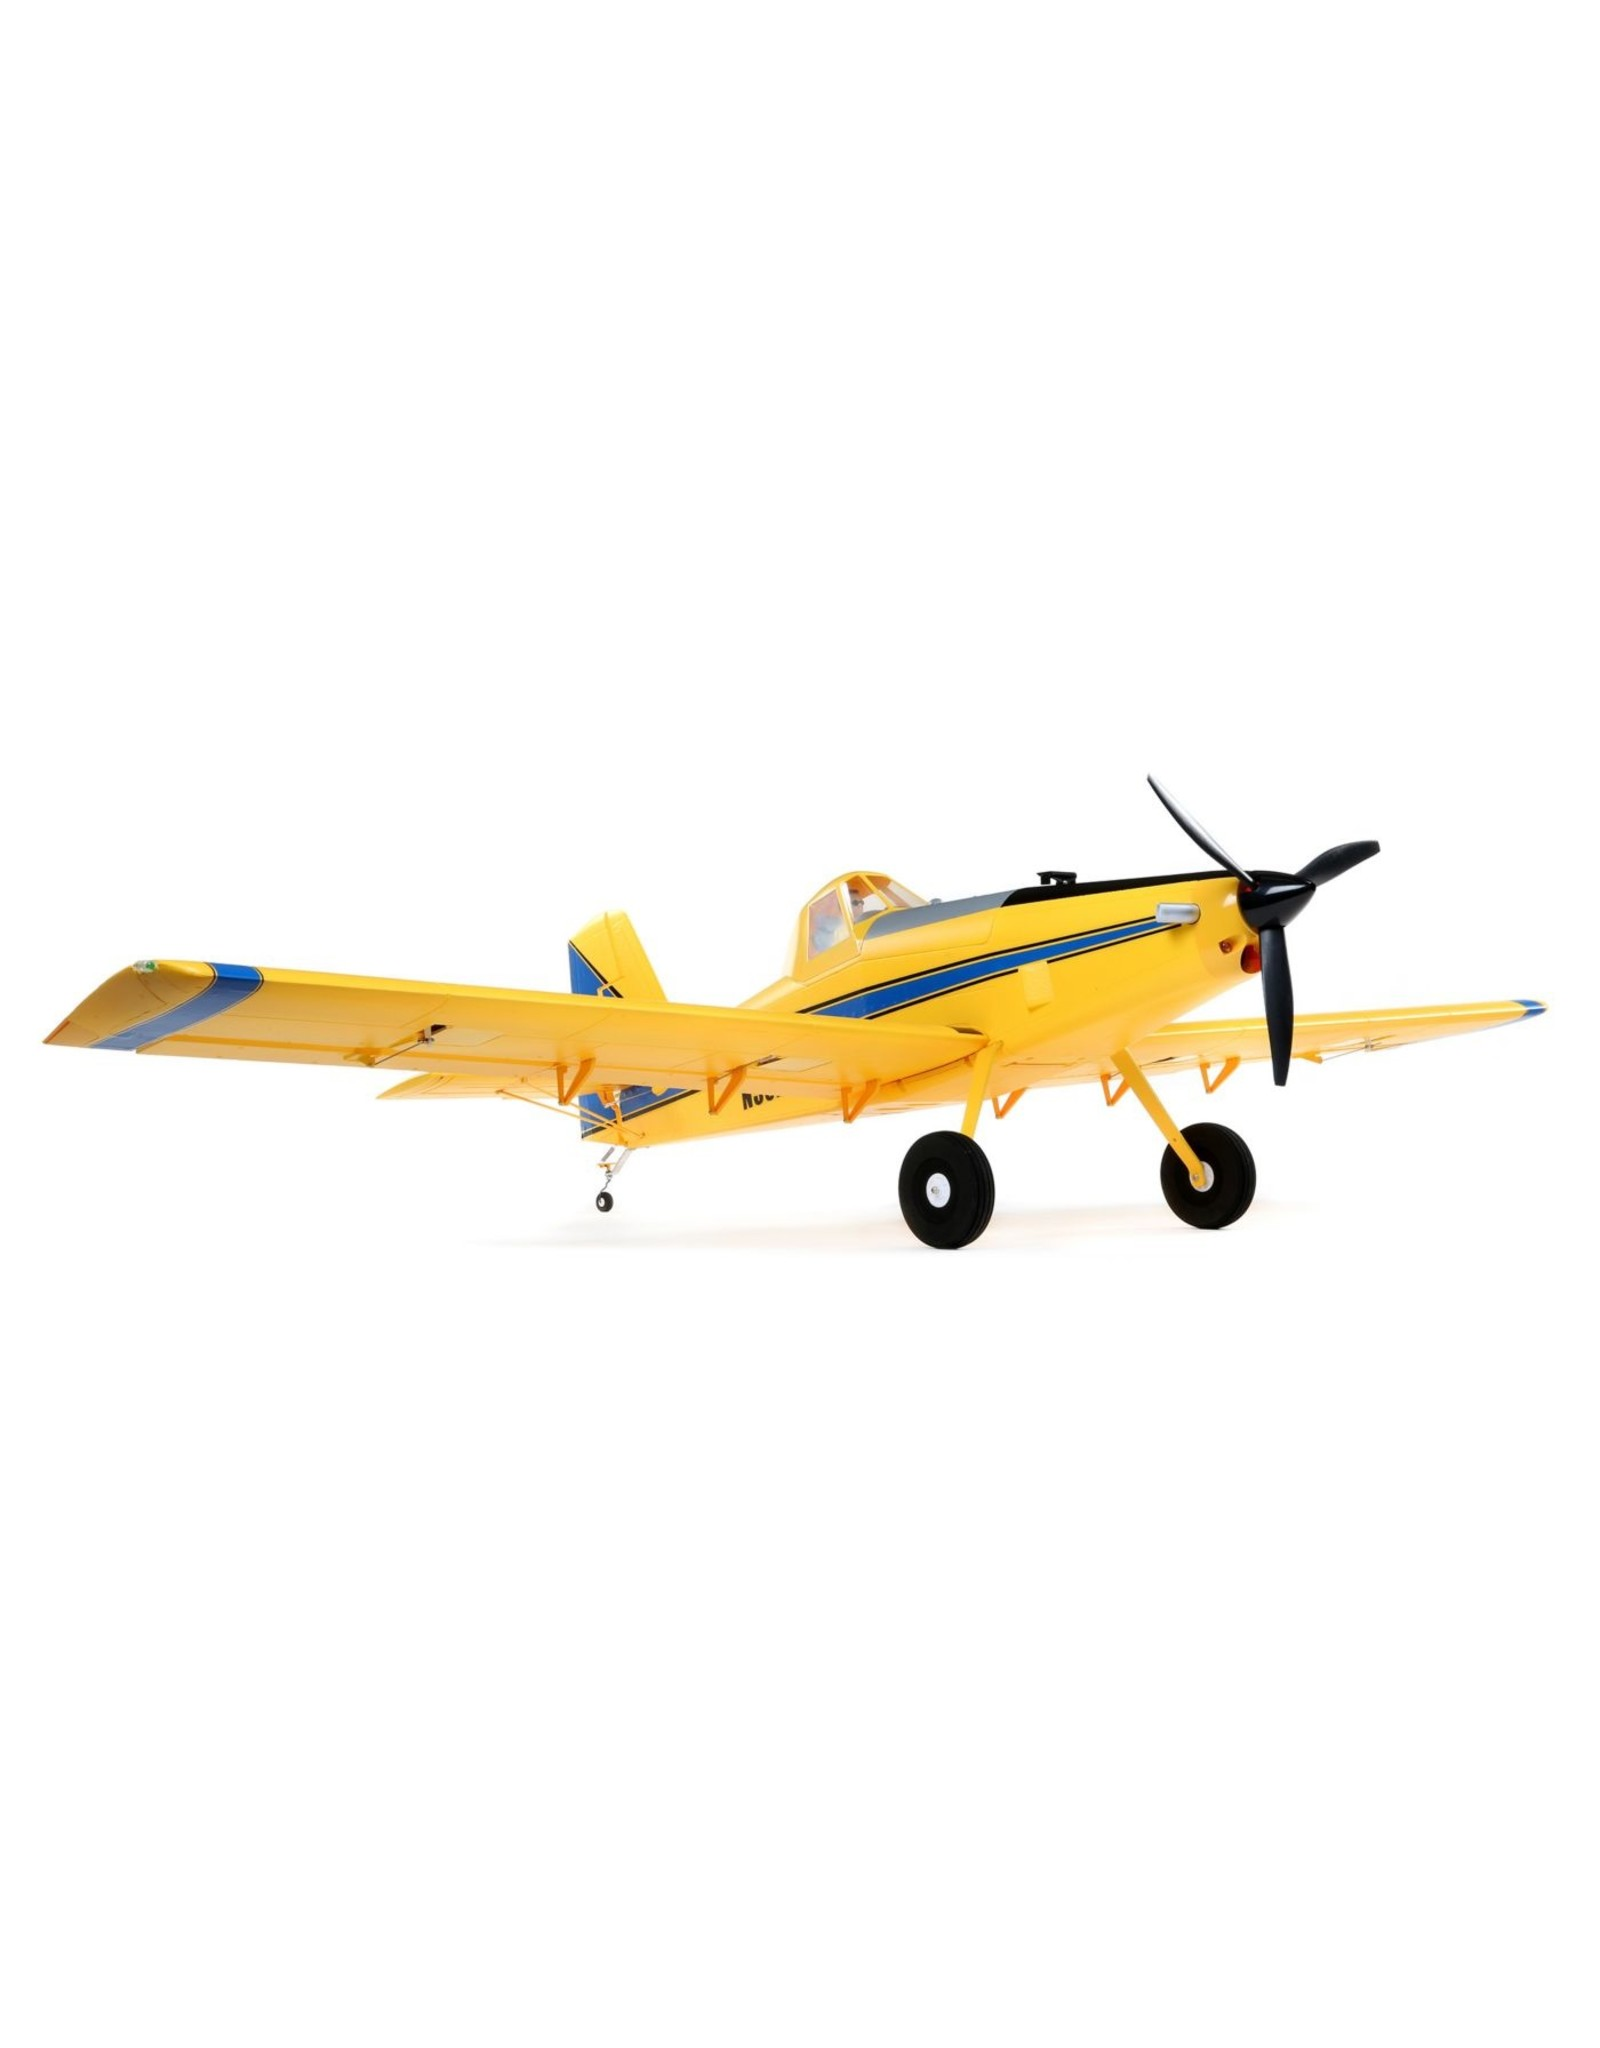 E-flite 16450 - Air Tractor 1.5m BNF Basic with AS3X and SAFE Select